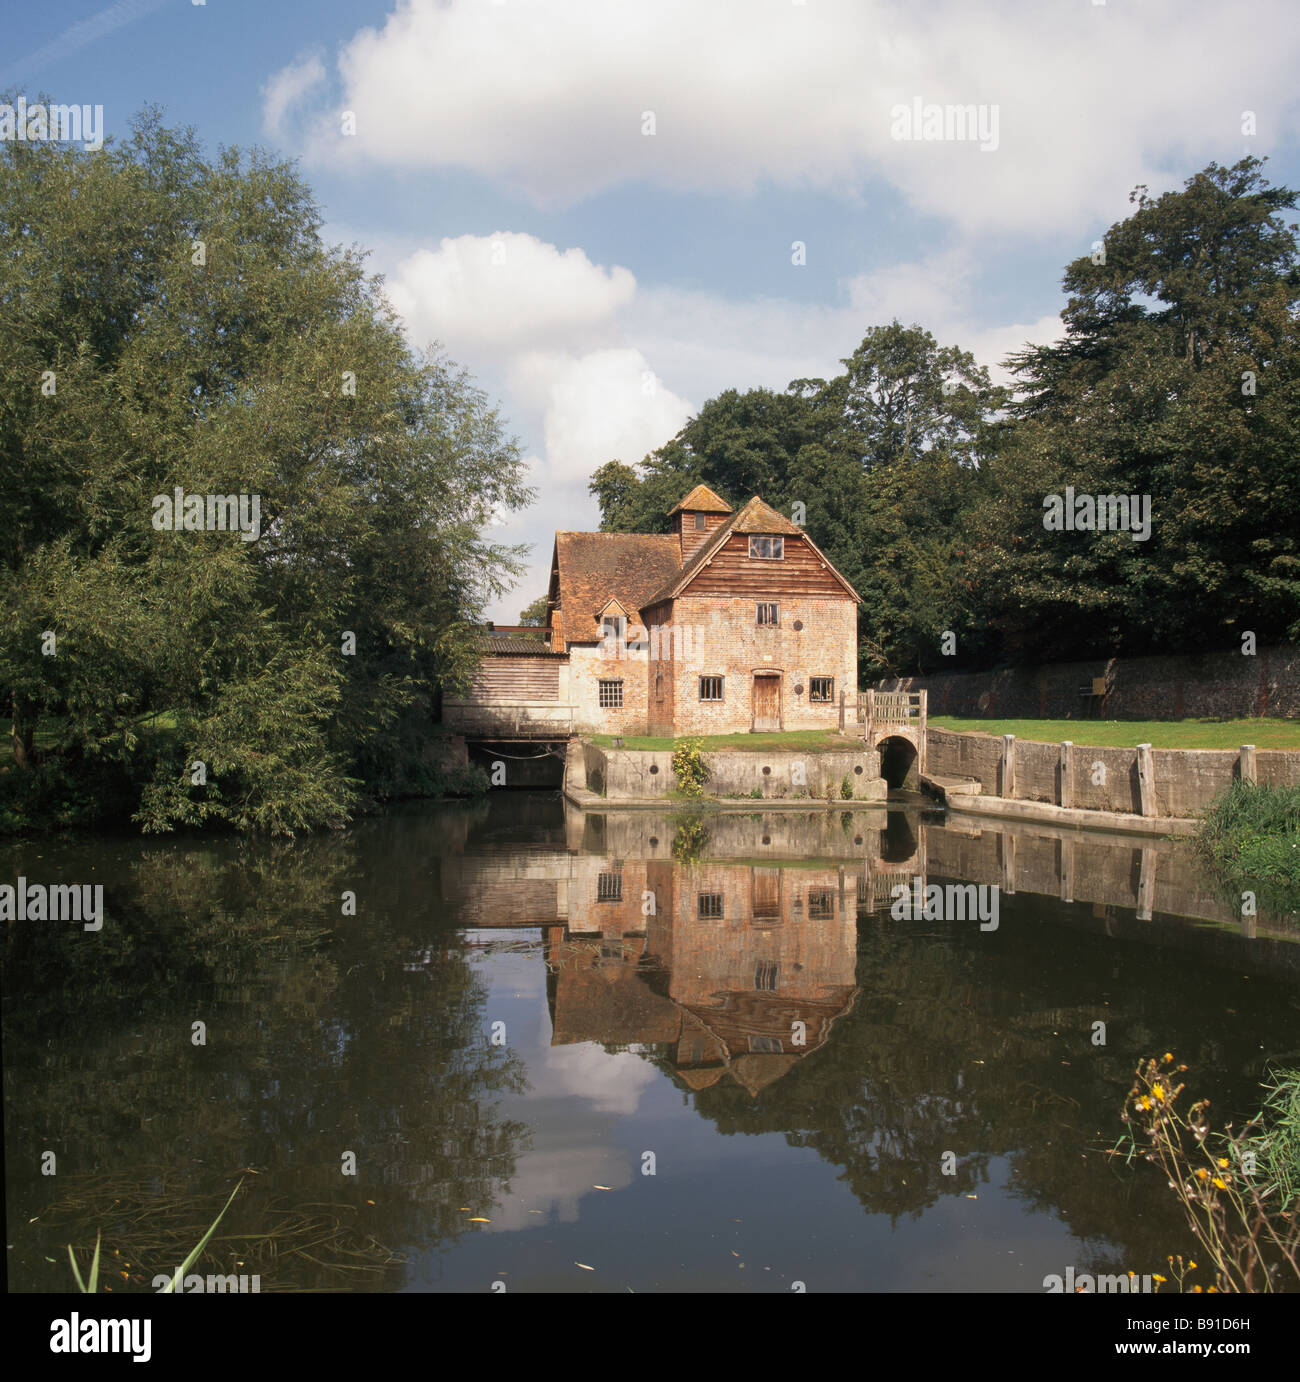 Mapledurham watermilll on the river Thames, Oxfordshire. - Stock Image